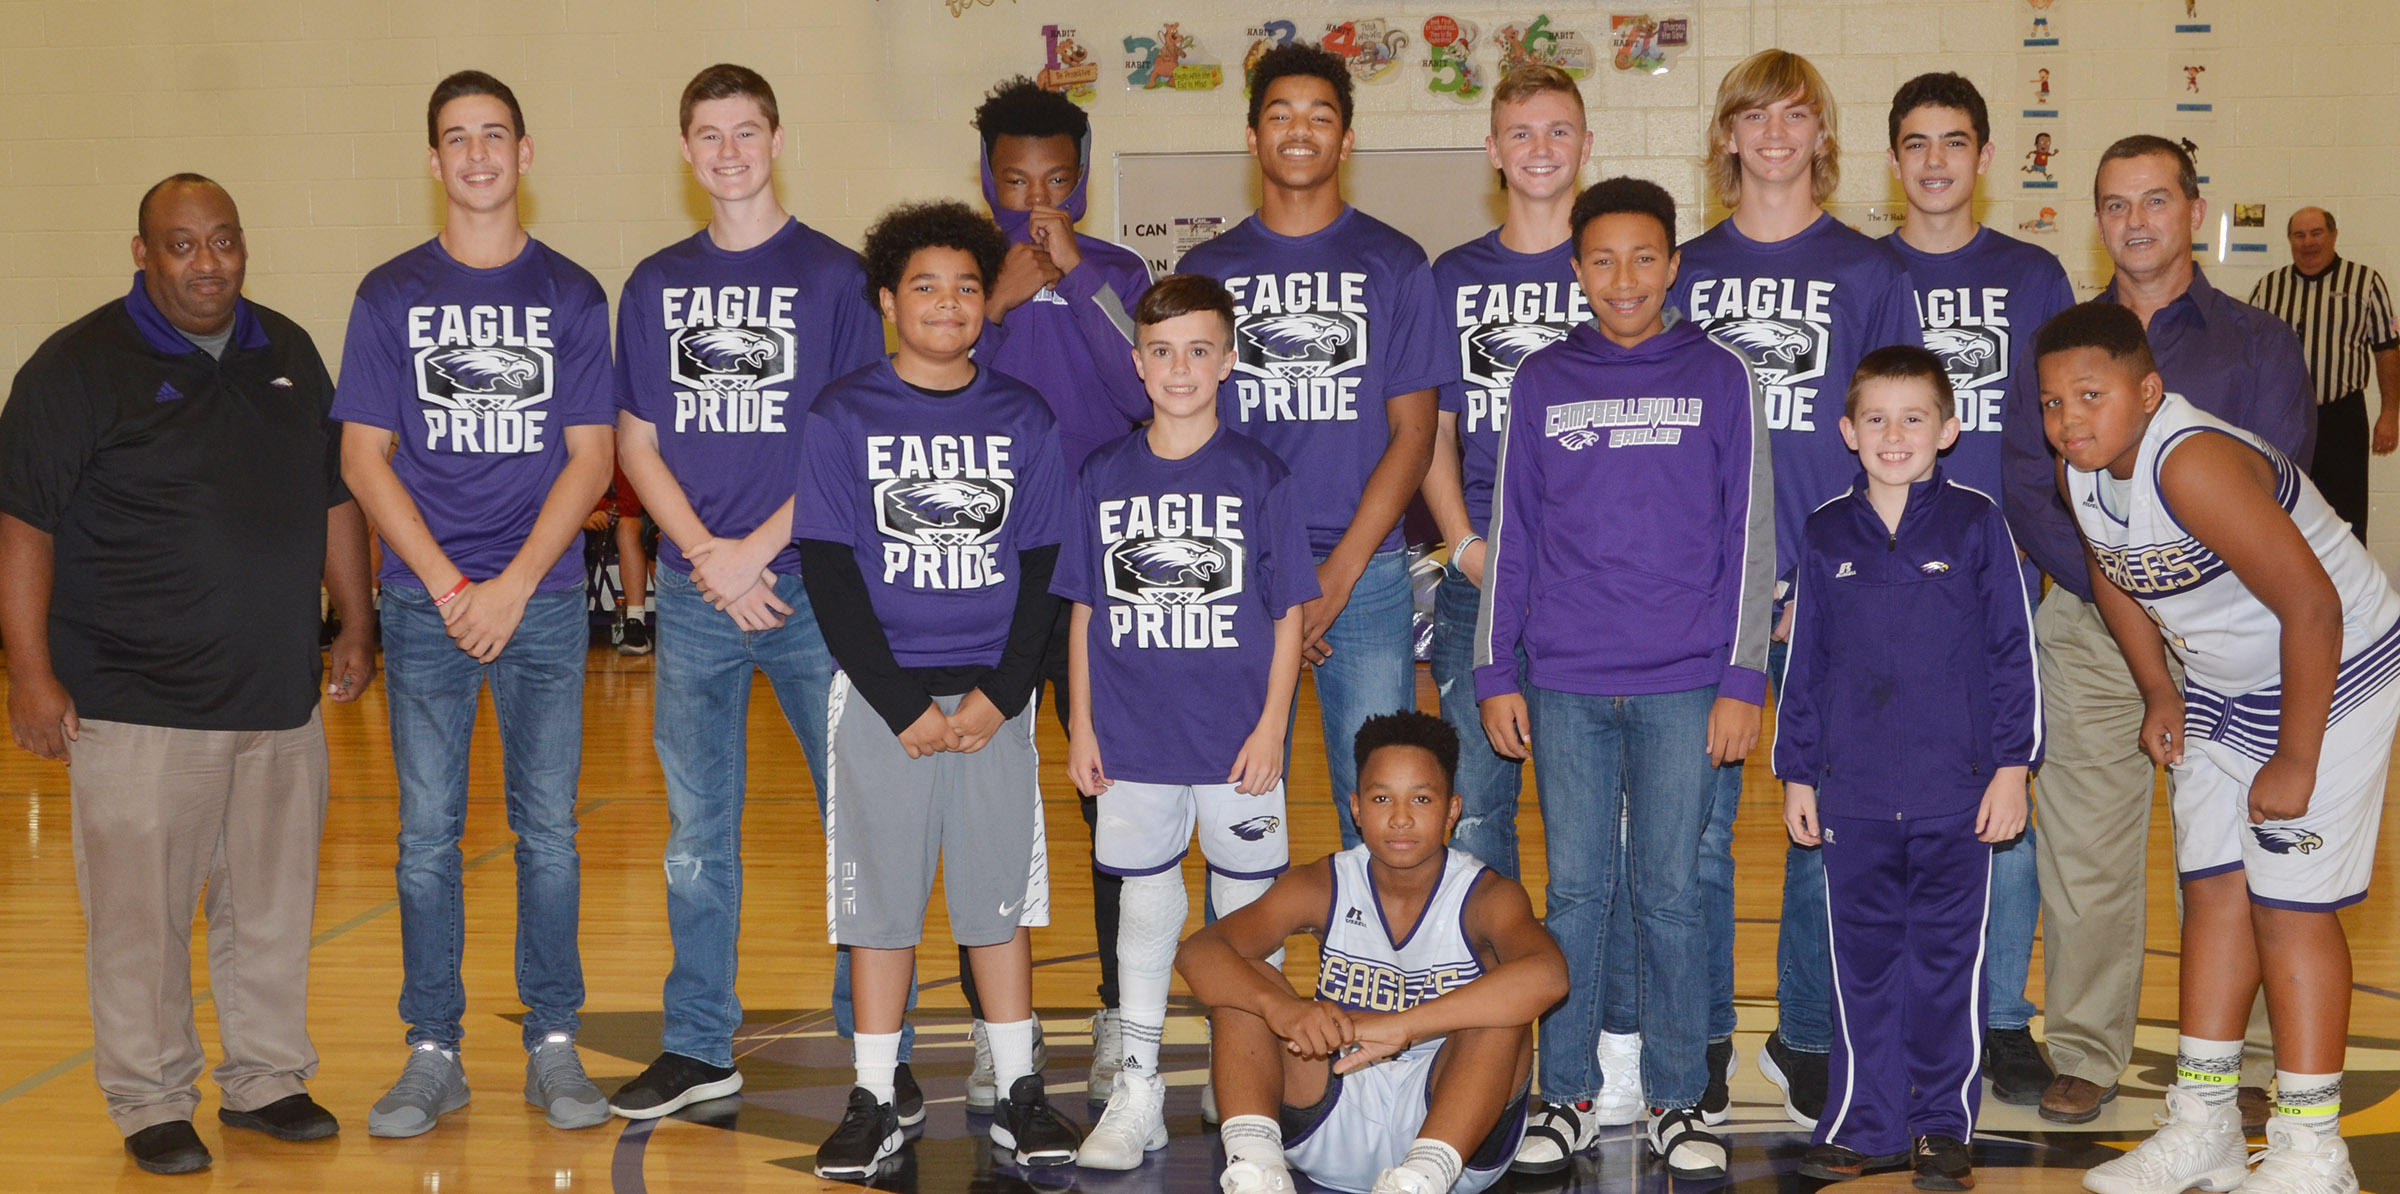 Members of the CMS undefeated 2016-2017 boys' basketball team who won the CKMSAC regular season and tournament championships are honored.